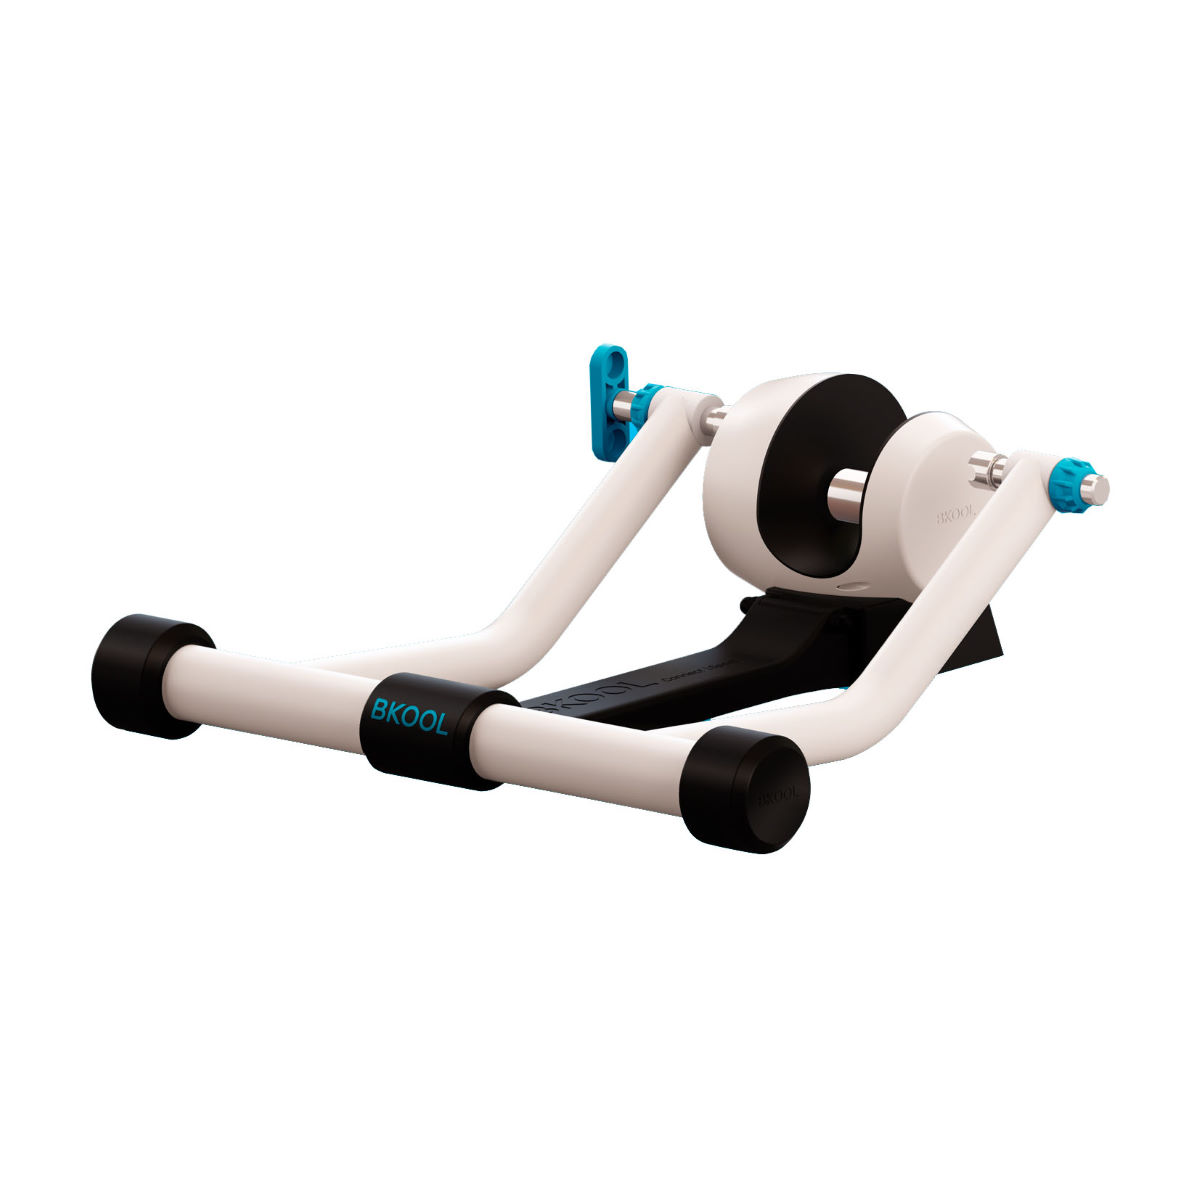 Home trainer Bkool Smart Go - One Size White/Black/Blue Home Trainer et rouleaux